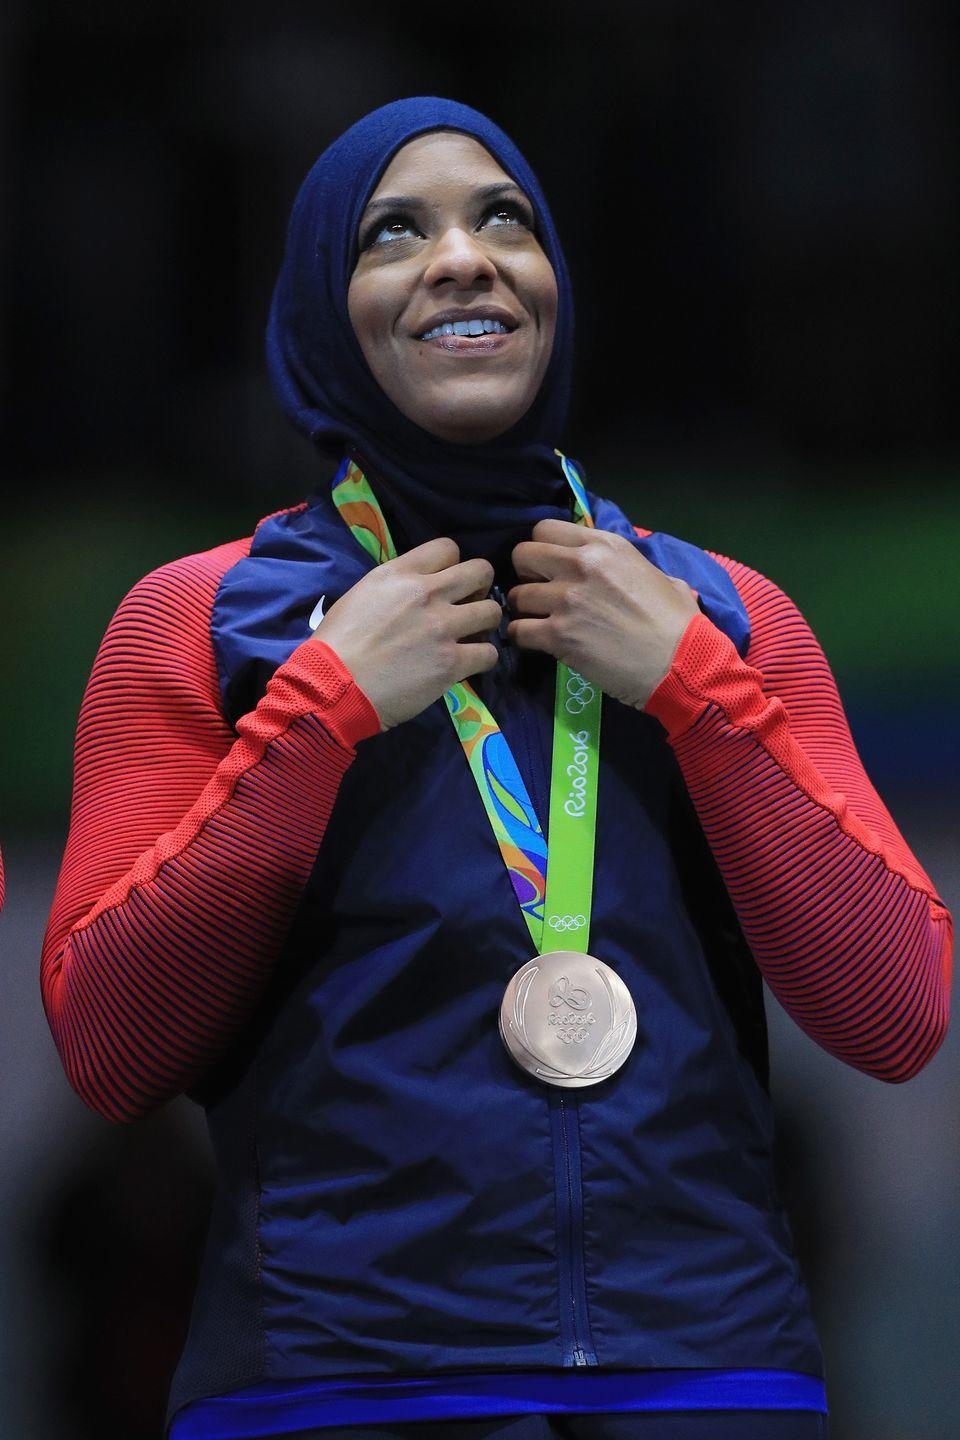 <p><strong>Sport: </strong>Fencing<br></p><p>In 2016, at the Rio Olympics, Ibtihaj Muhammad became the first American to compete while wearing a hijab. She earned a bronze medal at the Games, the first Muslim American woman to do so. Muhammad has since retired from the sport, but is now an activist and entrepreneur. In 2017, Mattel modeled a Barbie after her, and she also owns a clothing company called Louella.</p>